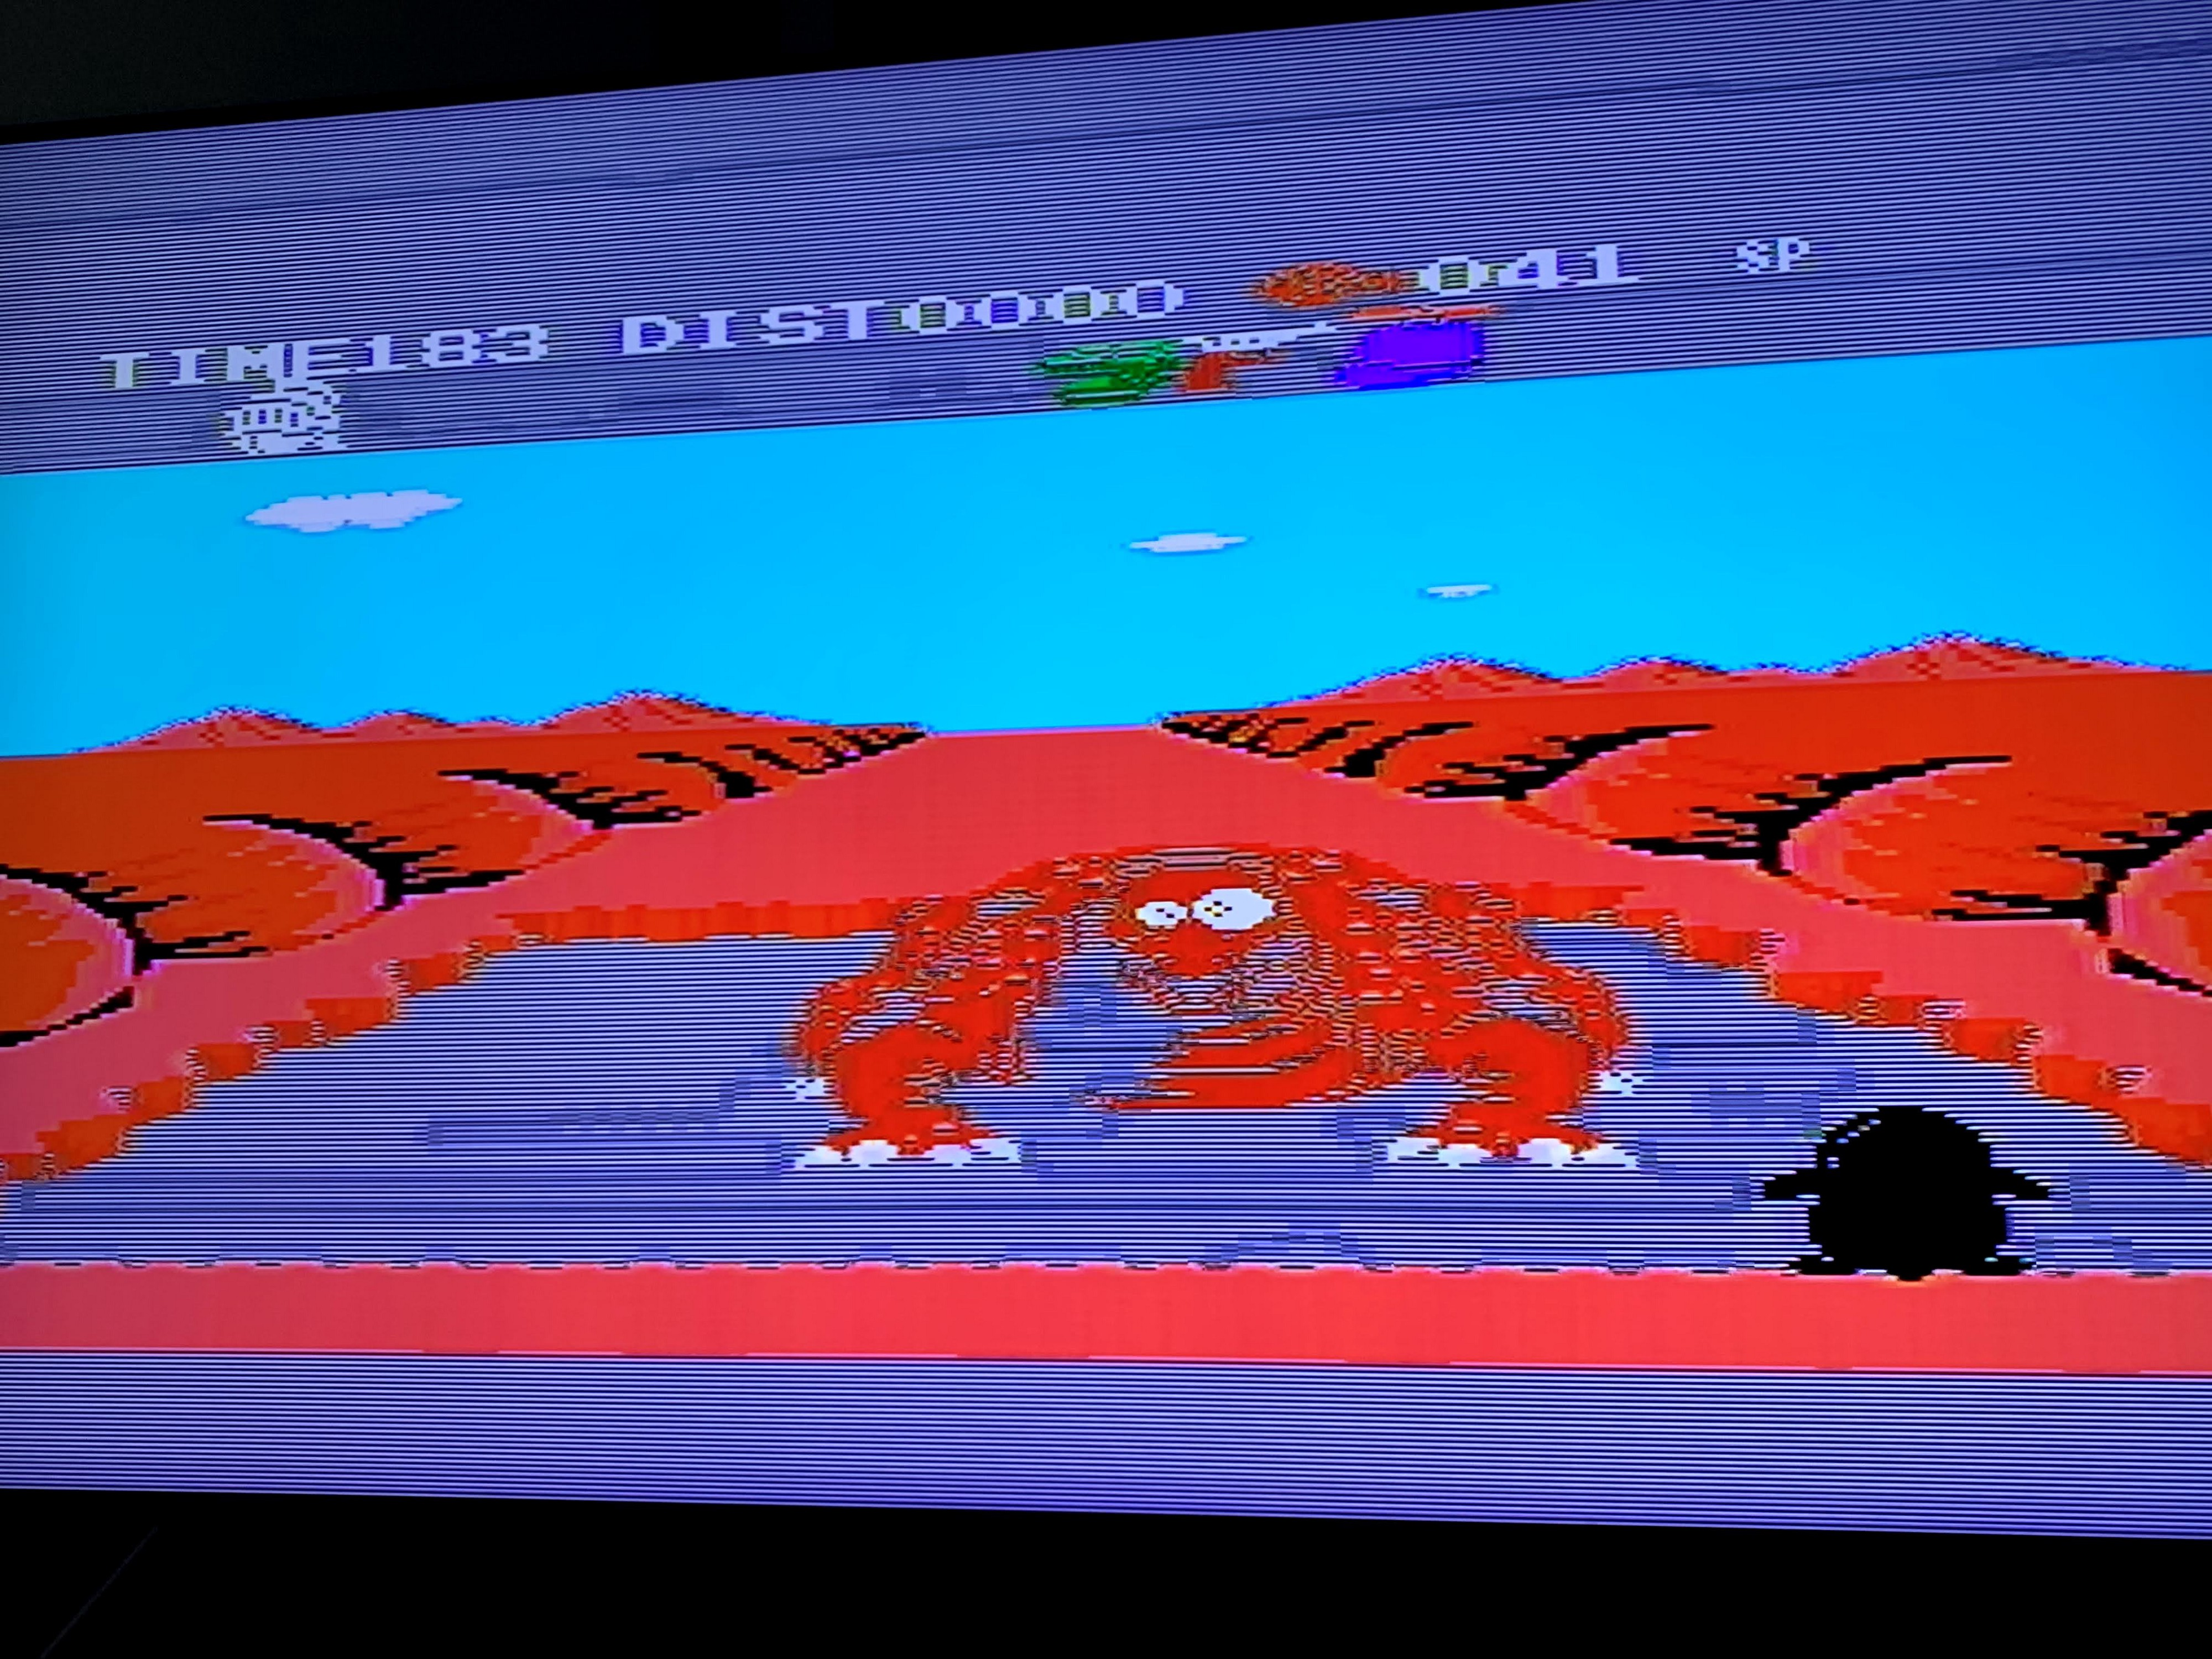 Beating one of the boss rounds in Penguin Adventure. A Godzilla-like creature is about to fall into a hole in a desert.